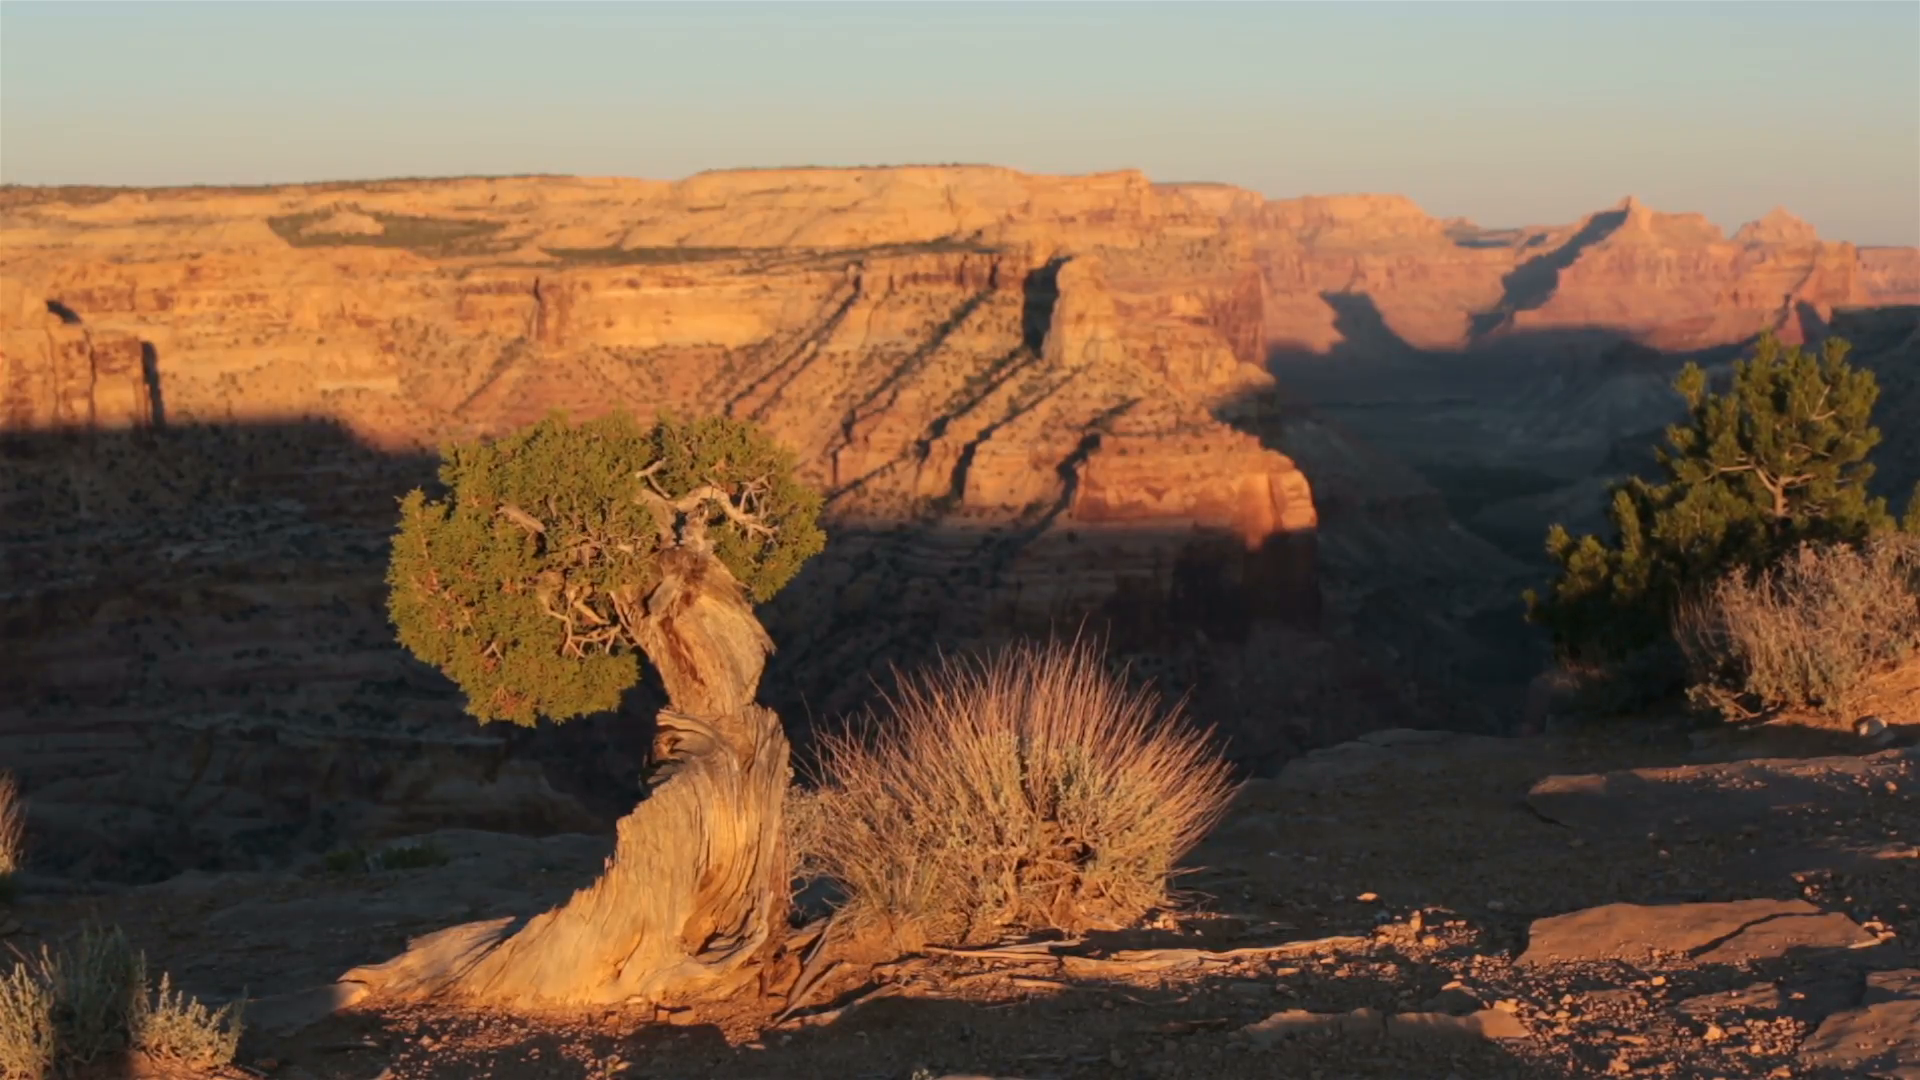 Rustic Cedar Tree San Rafael Wedge Overlook Grand Canyon HD 9873 Stock  Video Footage - VideoBlocks - Grand Canyon PNG HD